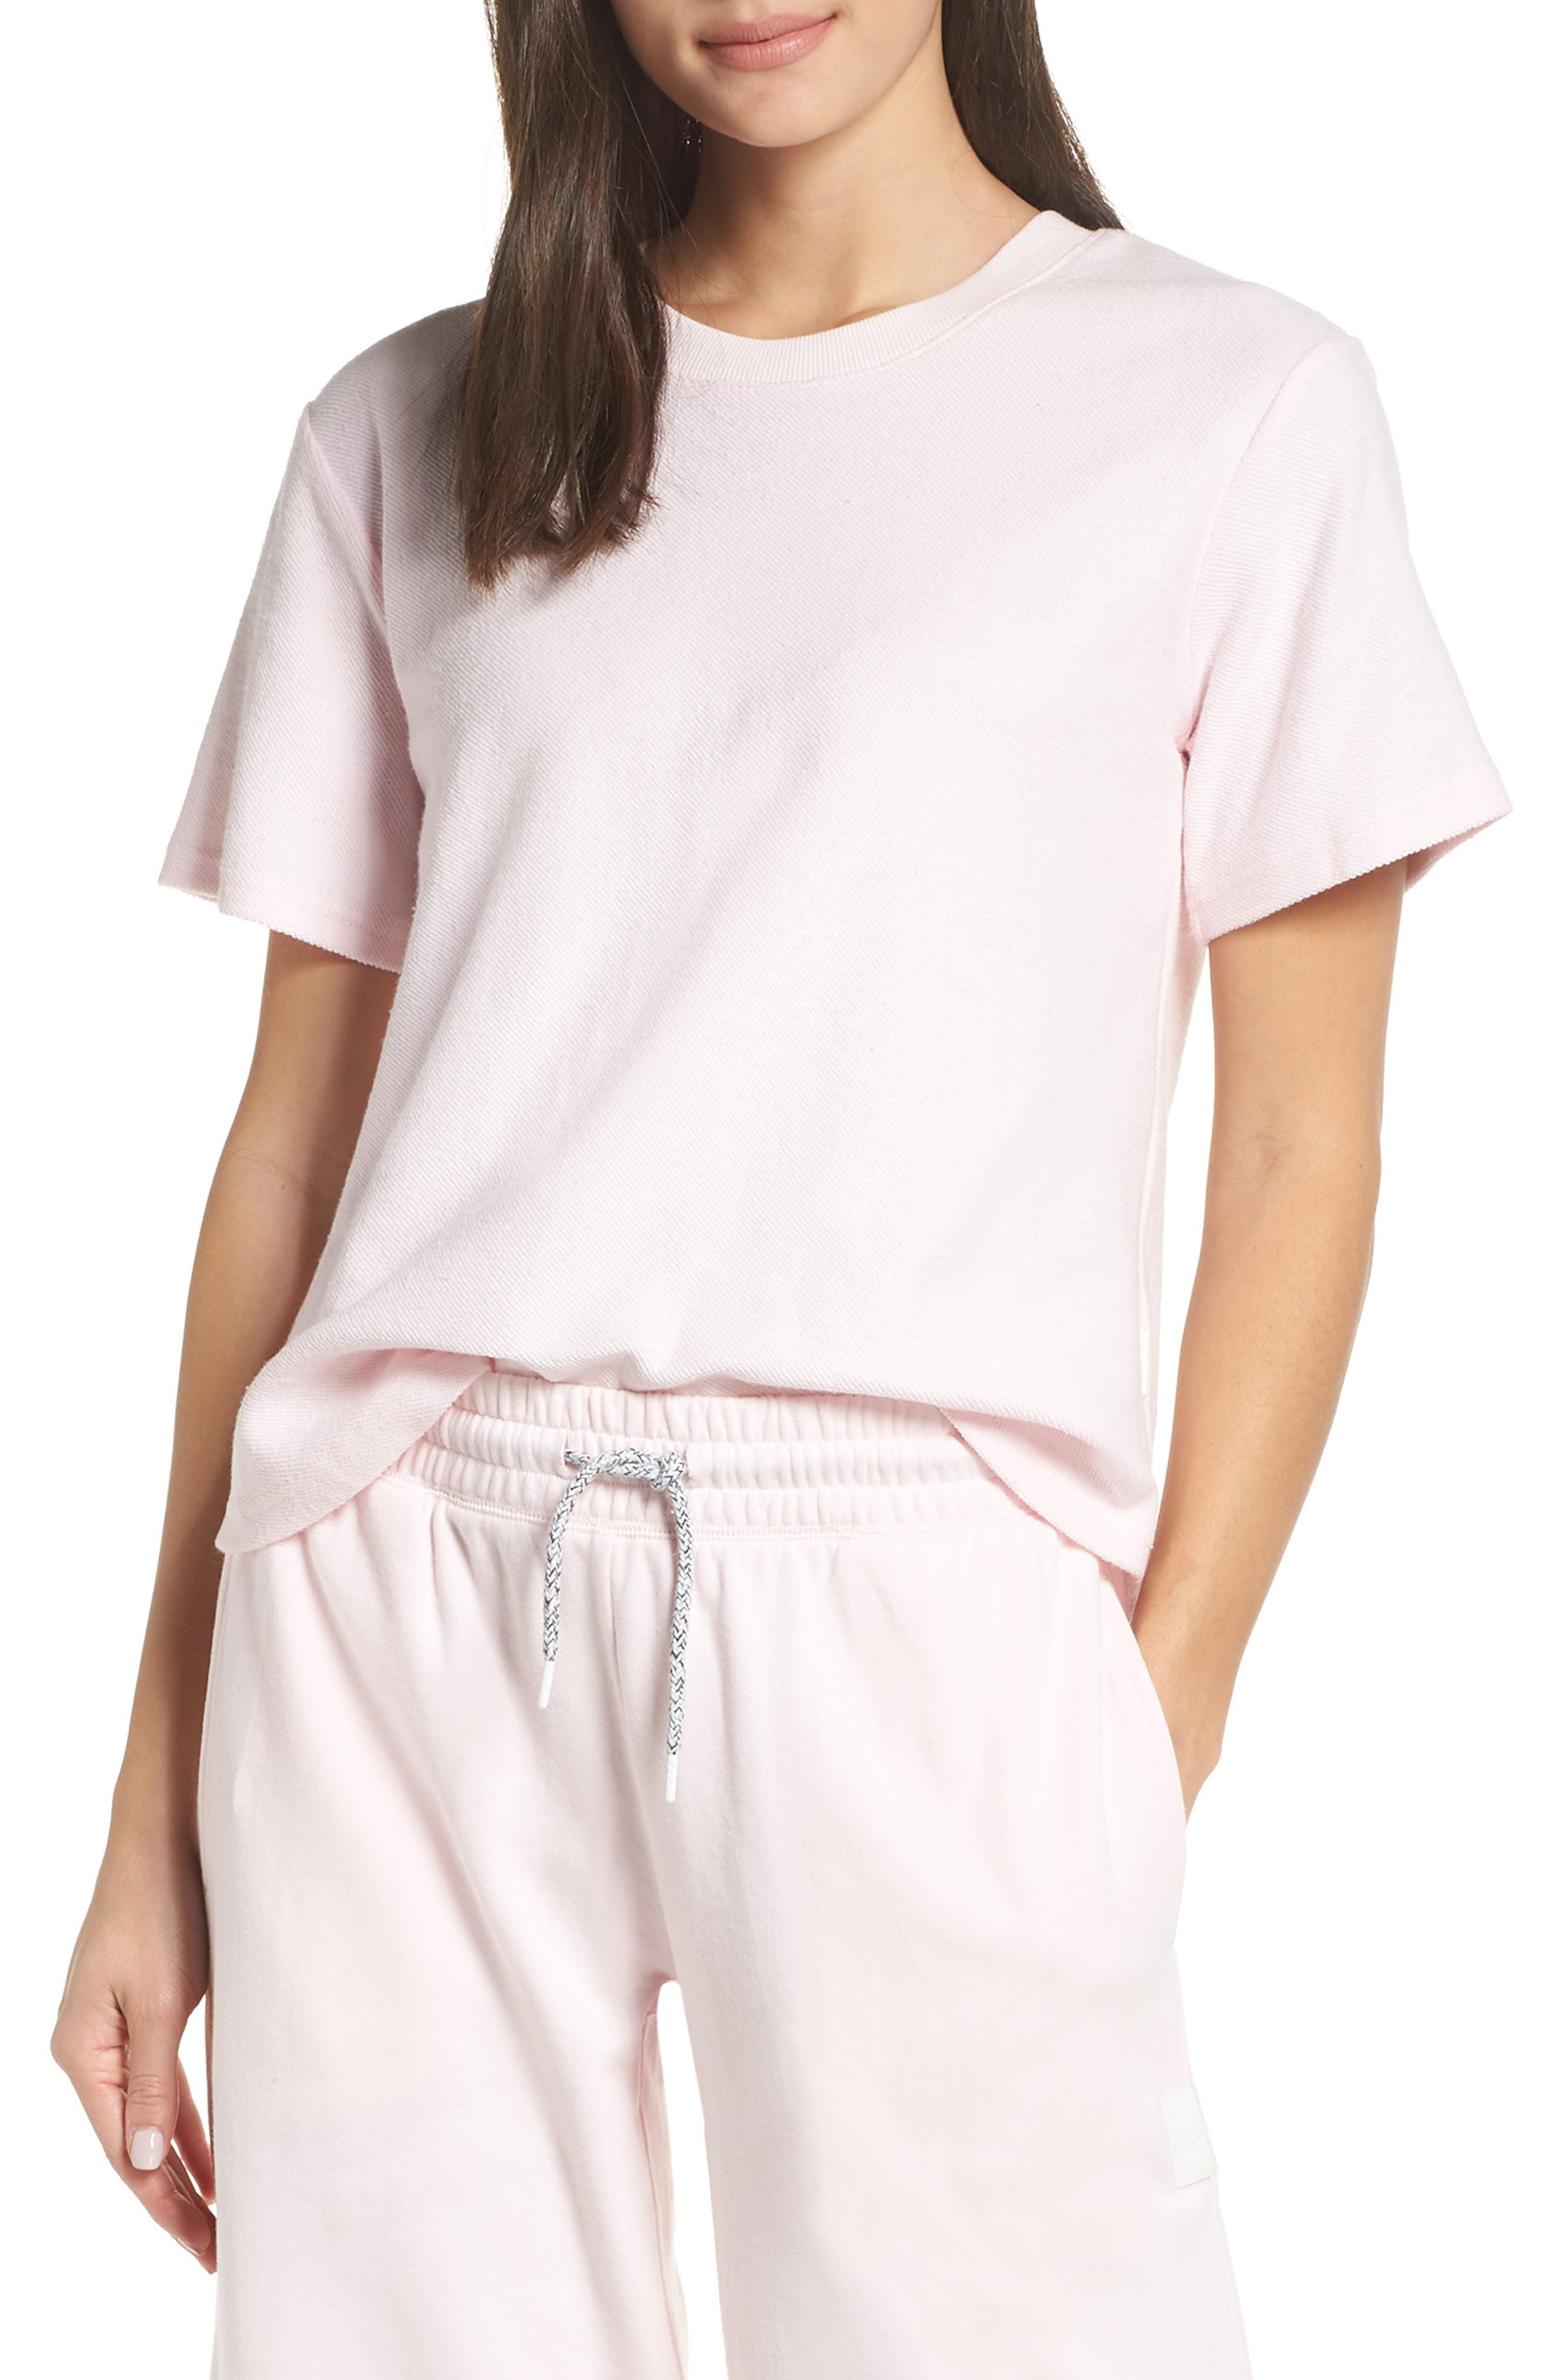 CHALMERS, Indy Tee, Main thumbnail 1, color, BLUSH PINK BABY TERRY